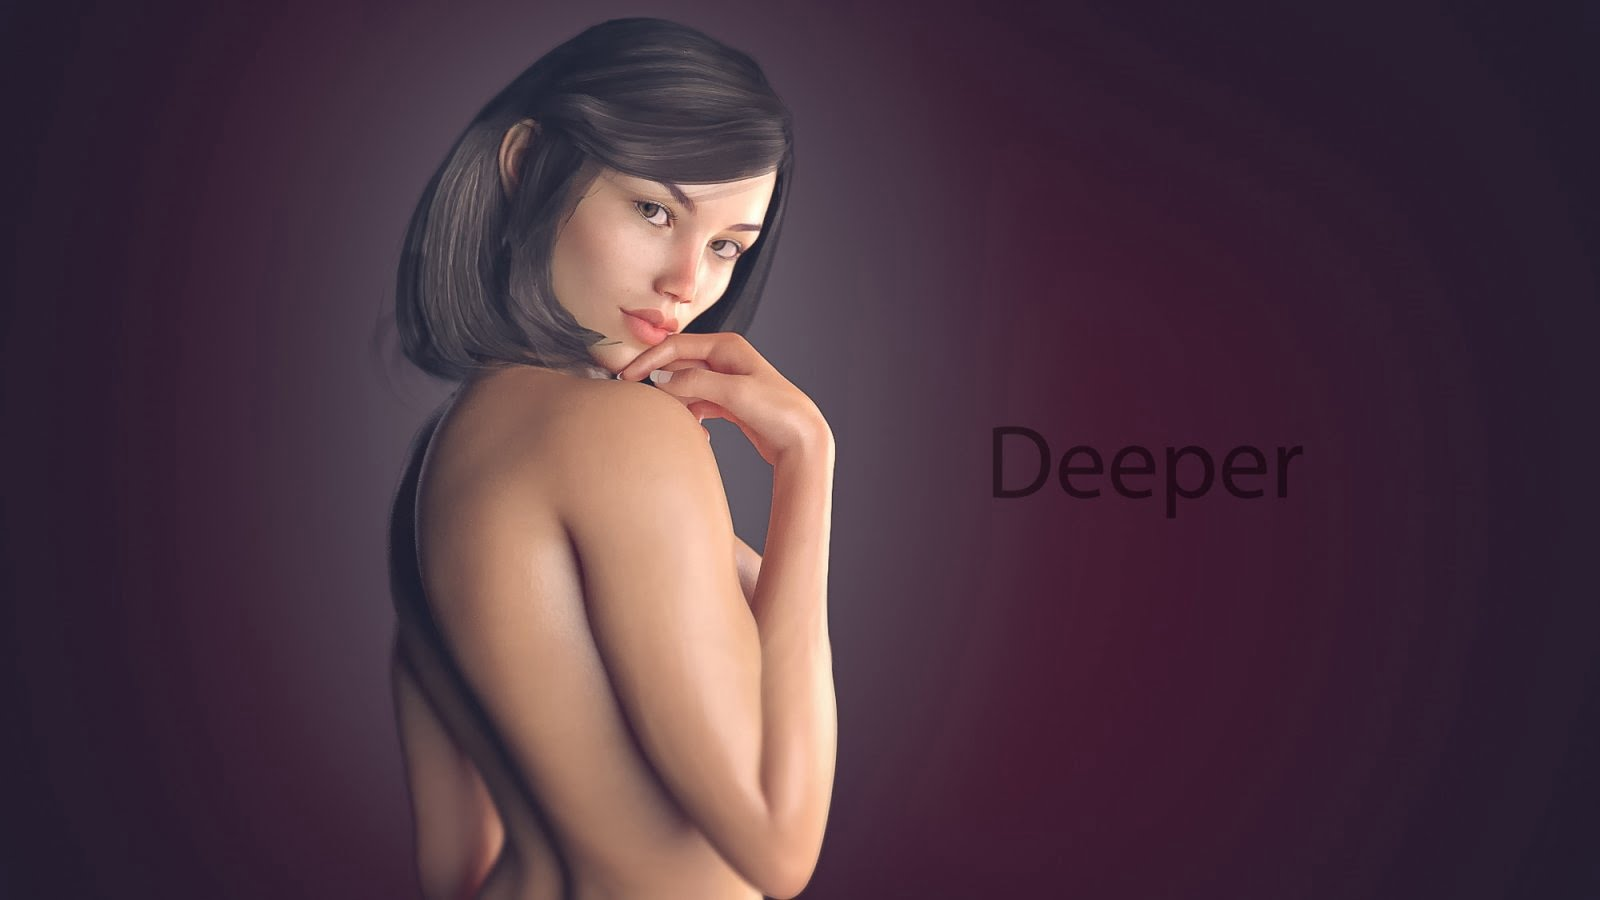 Deeper Adult Game Cover